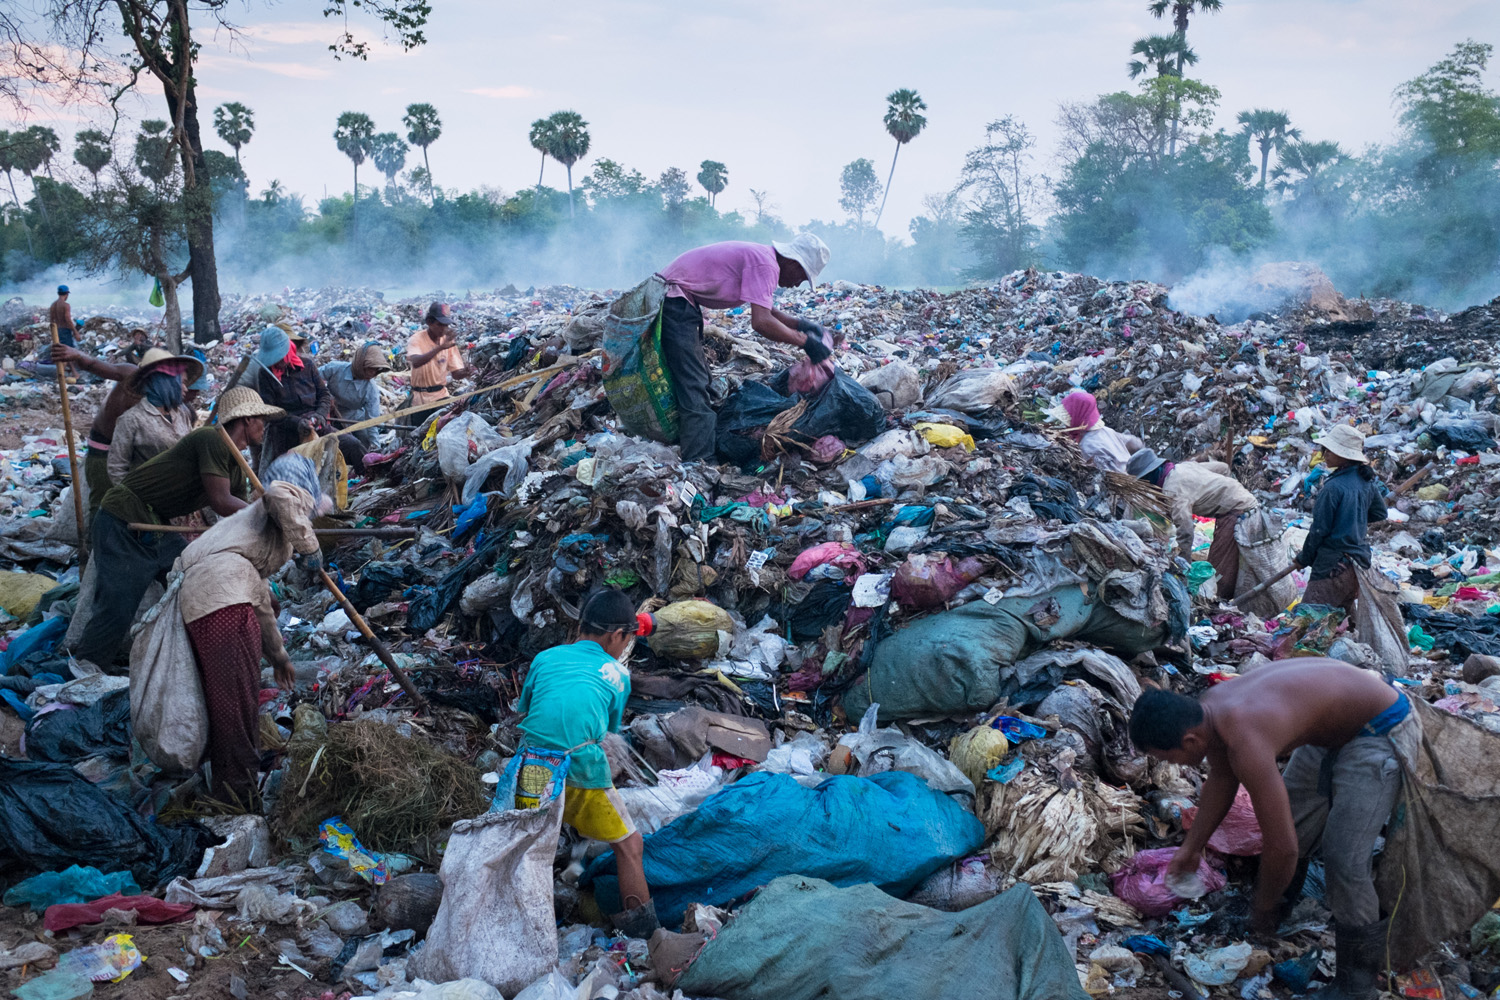 Scavenging atop the massive dump that receives most of the refuse from Siem Reap, Cambodia. Siem Reap is the gateway to the Angkor Archaeological Park, one of Asia's greatest attractions.